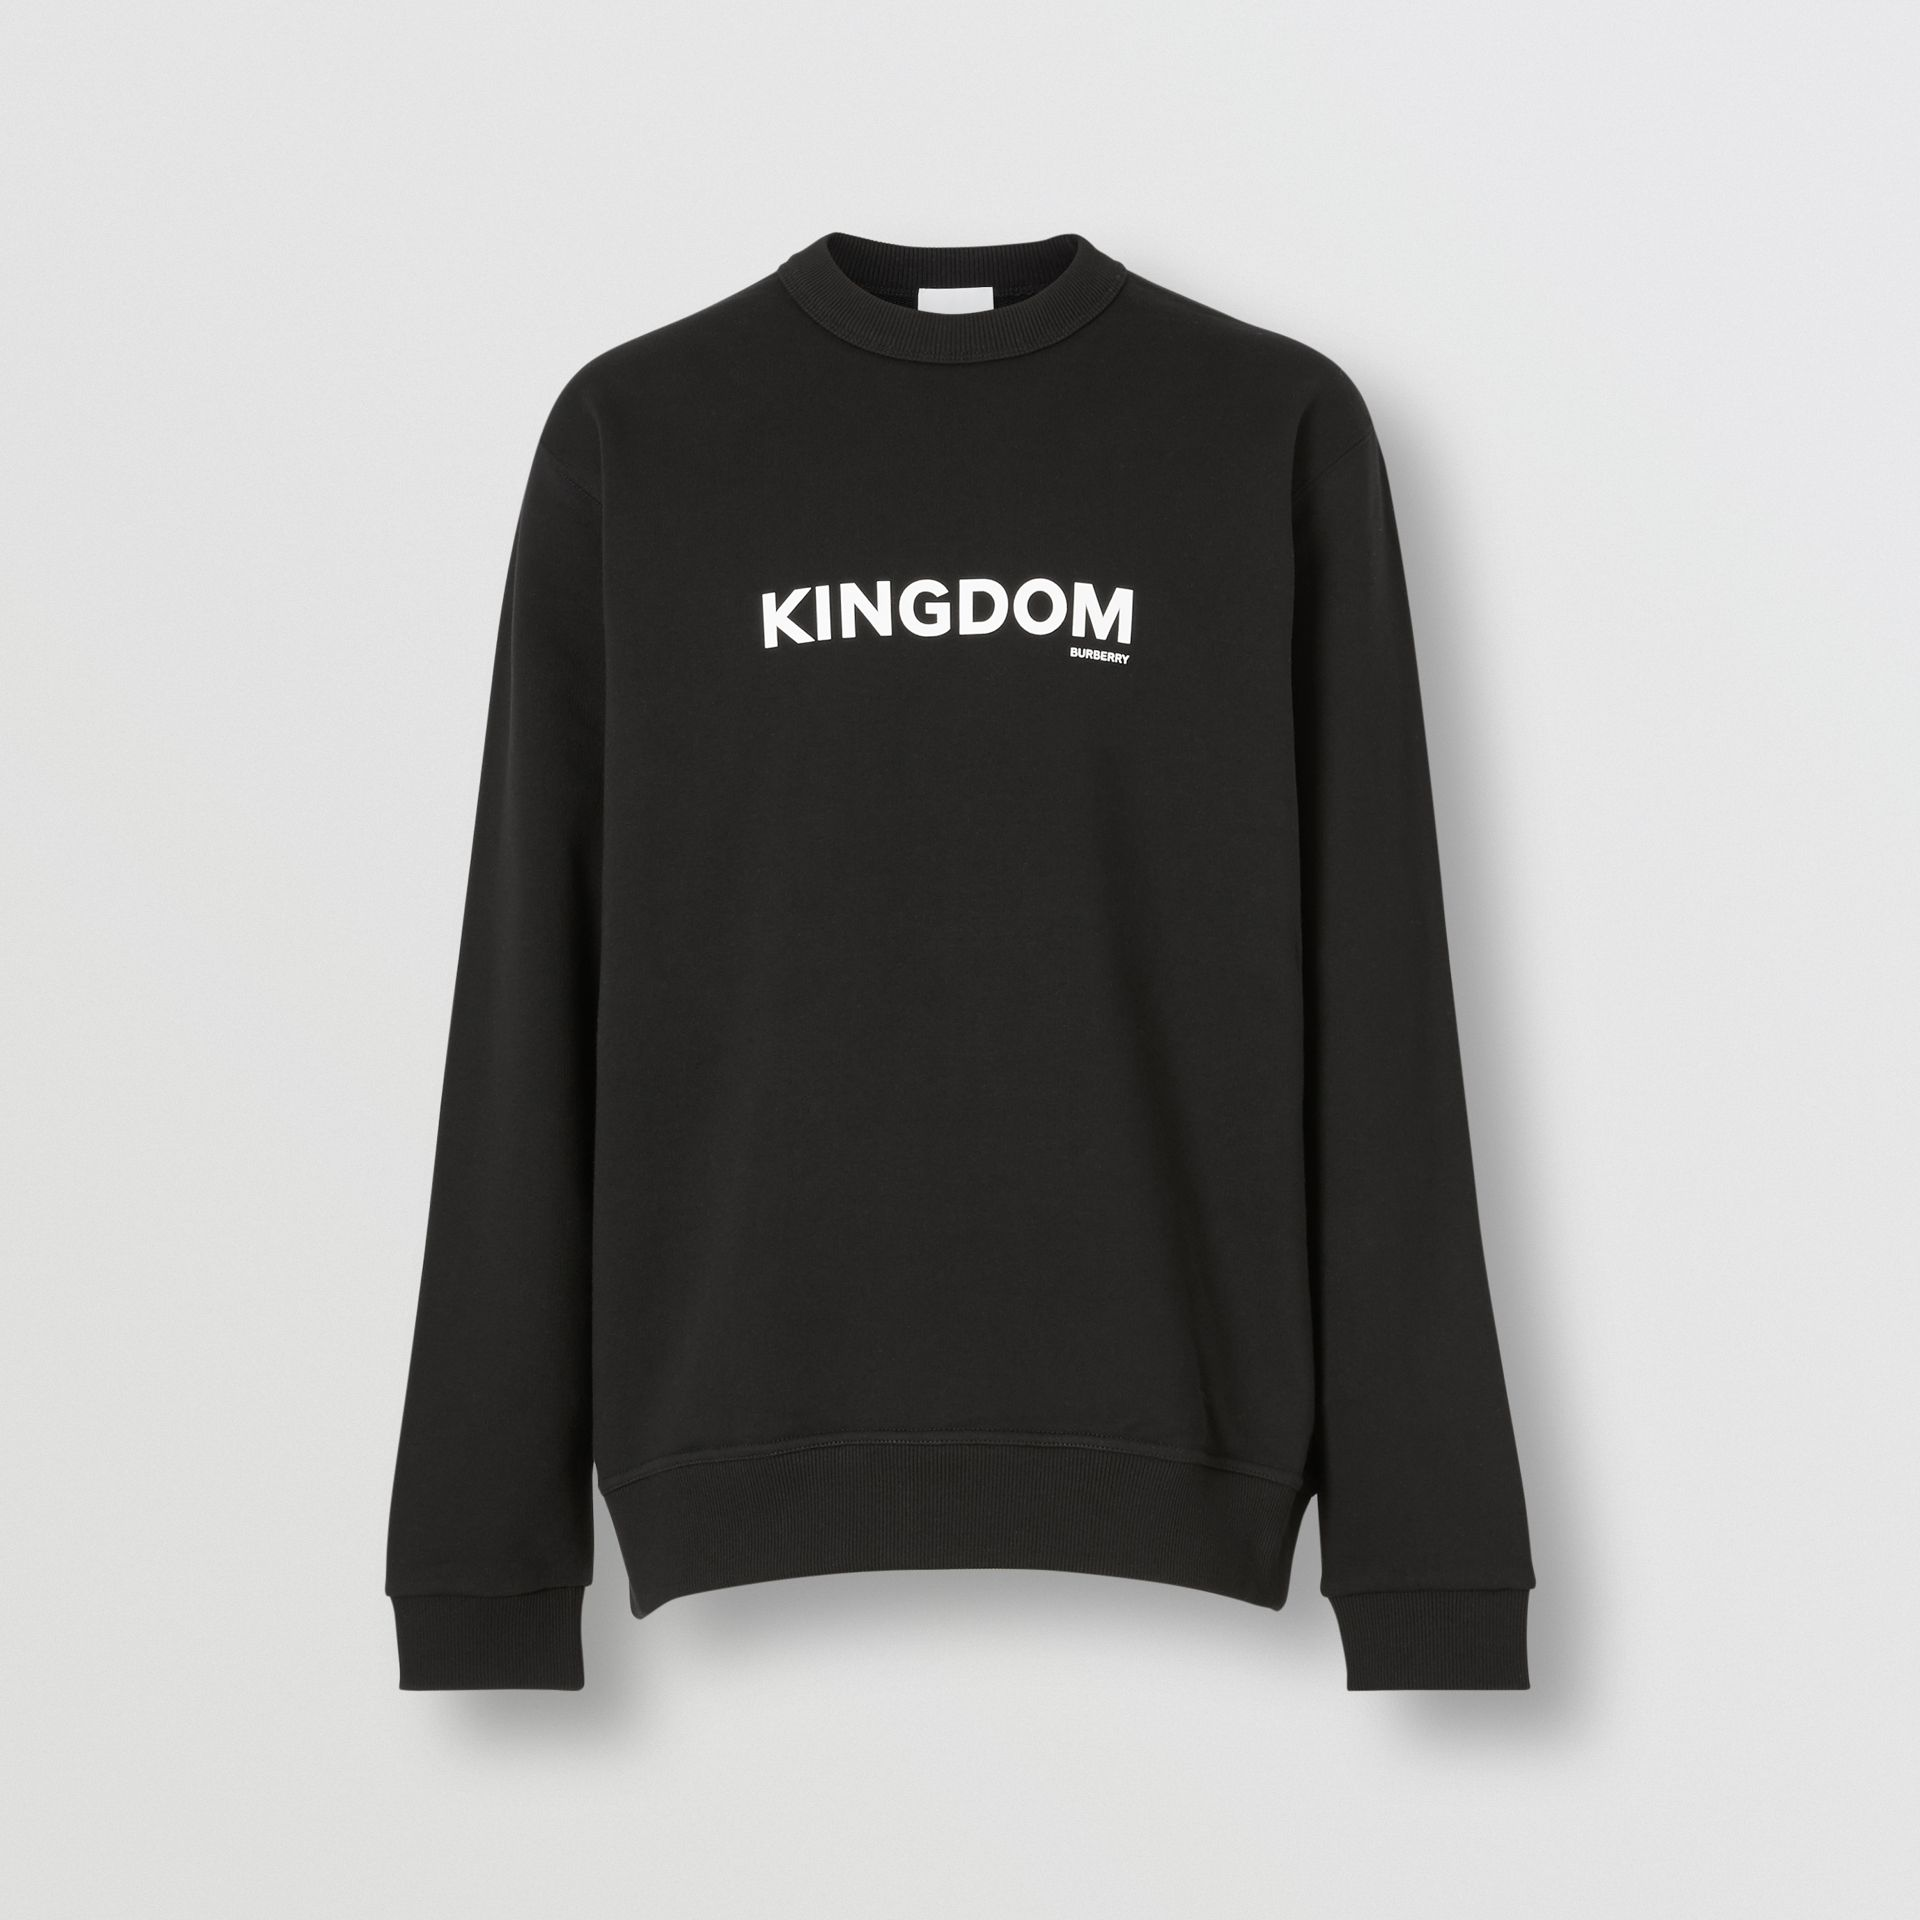 Kingdom Print Cotton Sweatshirt in Black - Men | Burberry - gallery image 3